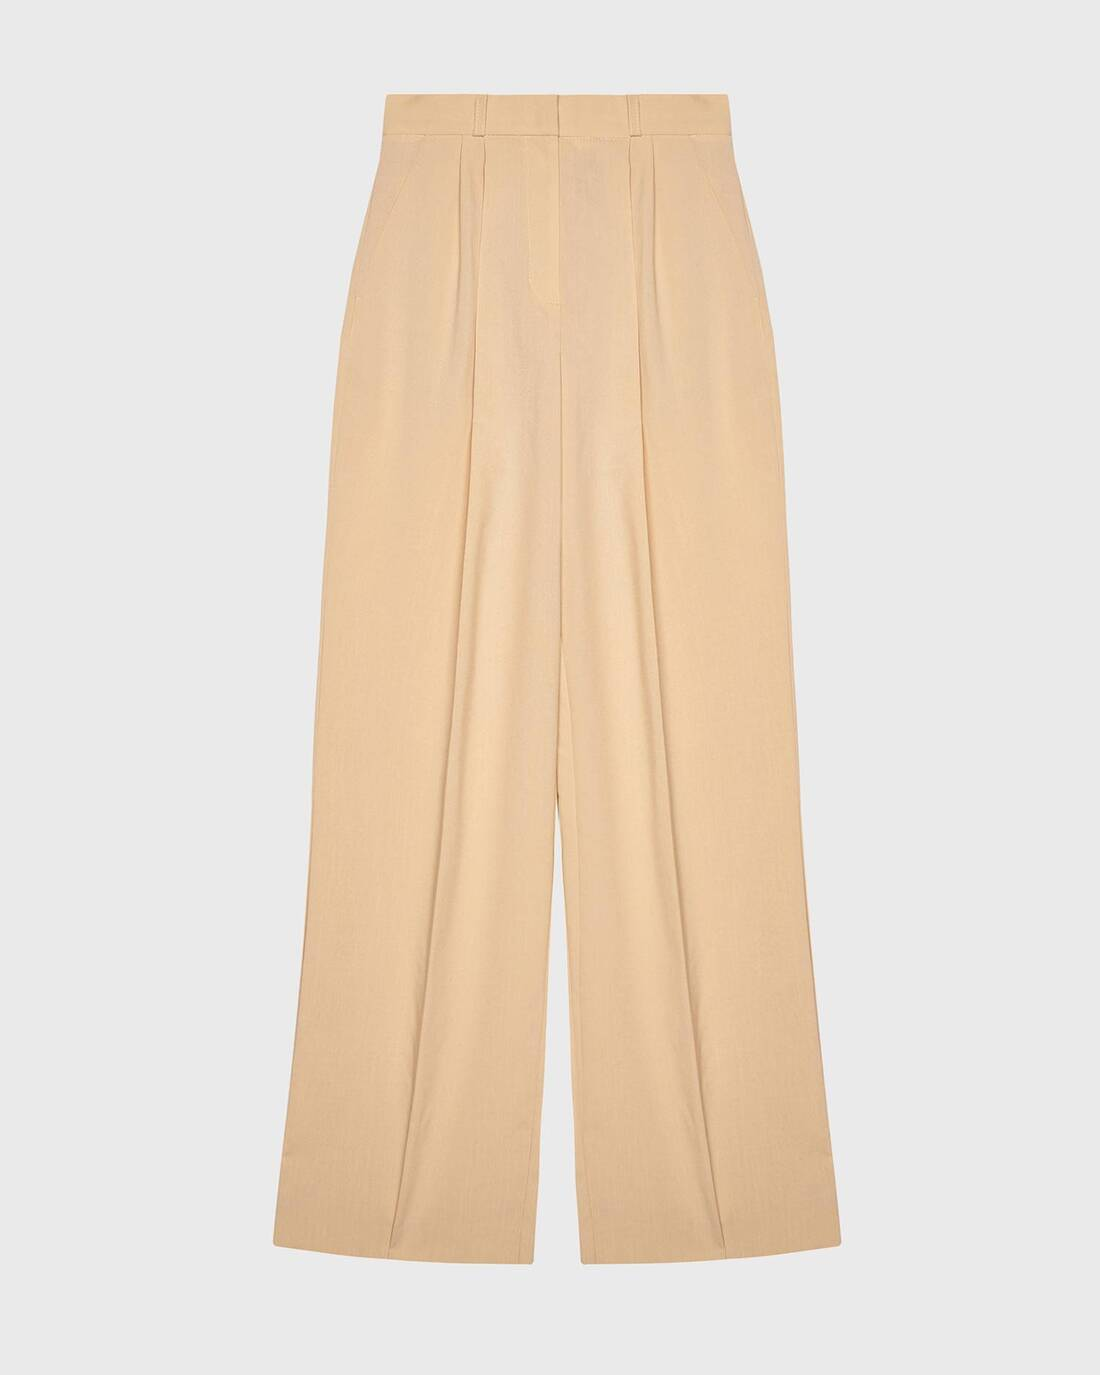 Costume pants with pleats